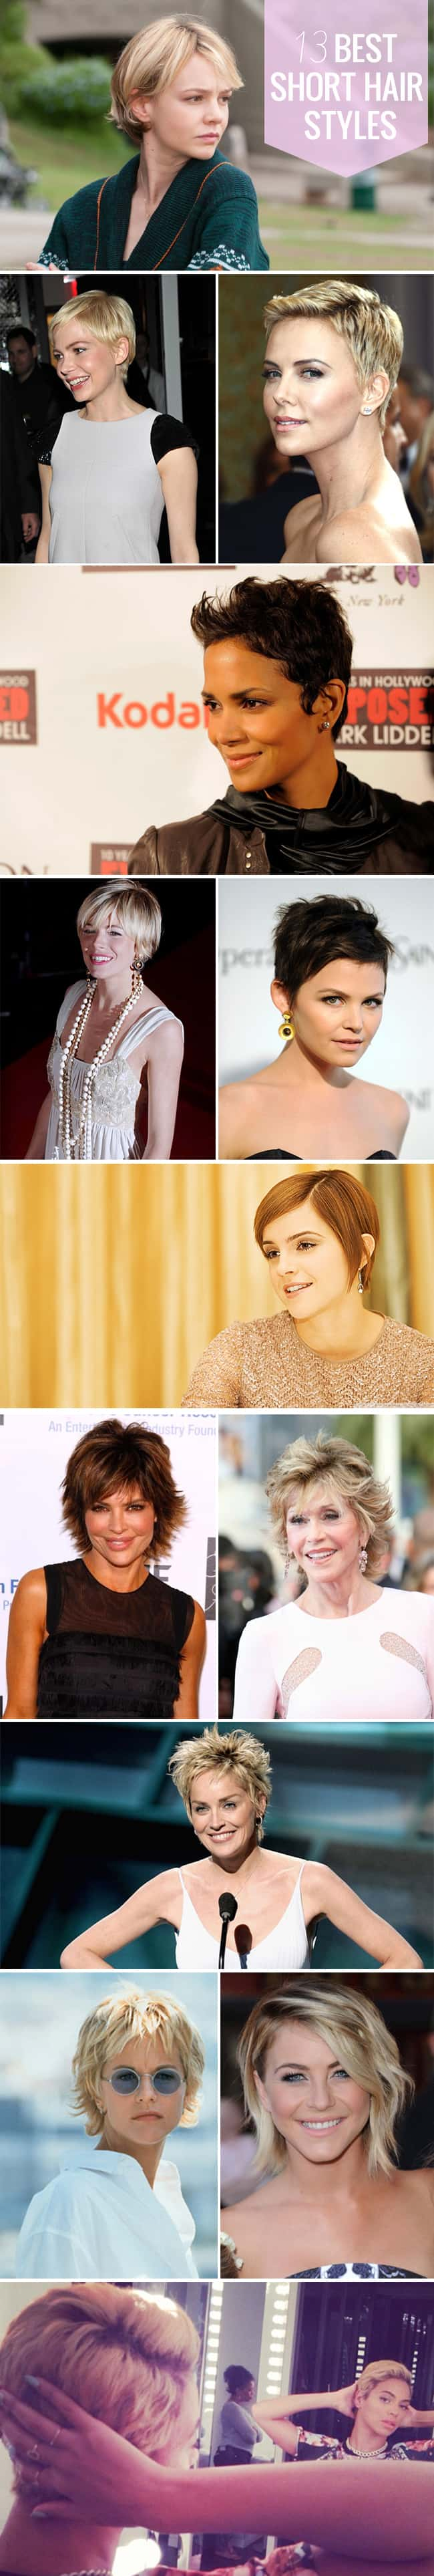 13 Best Short Hairstyles | Hello Glow